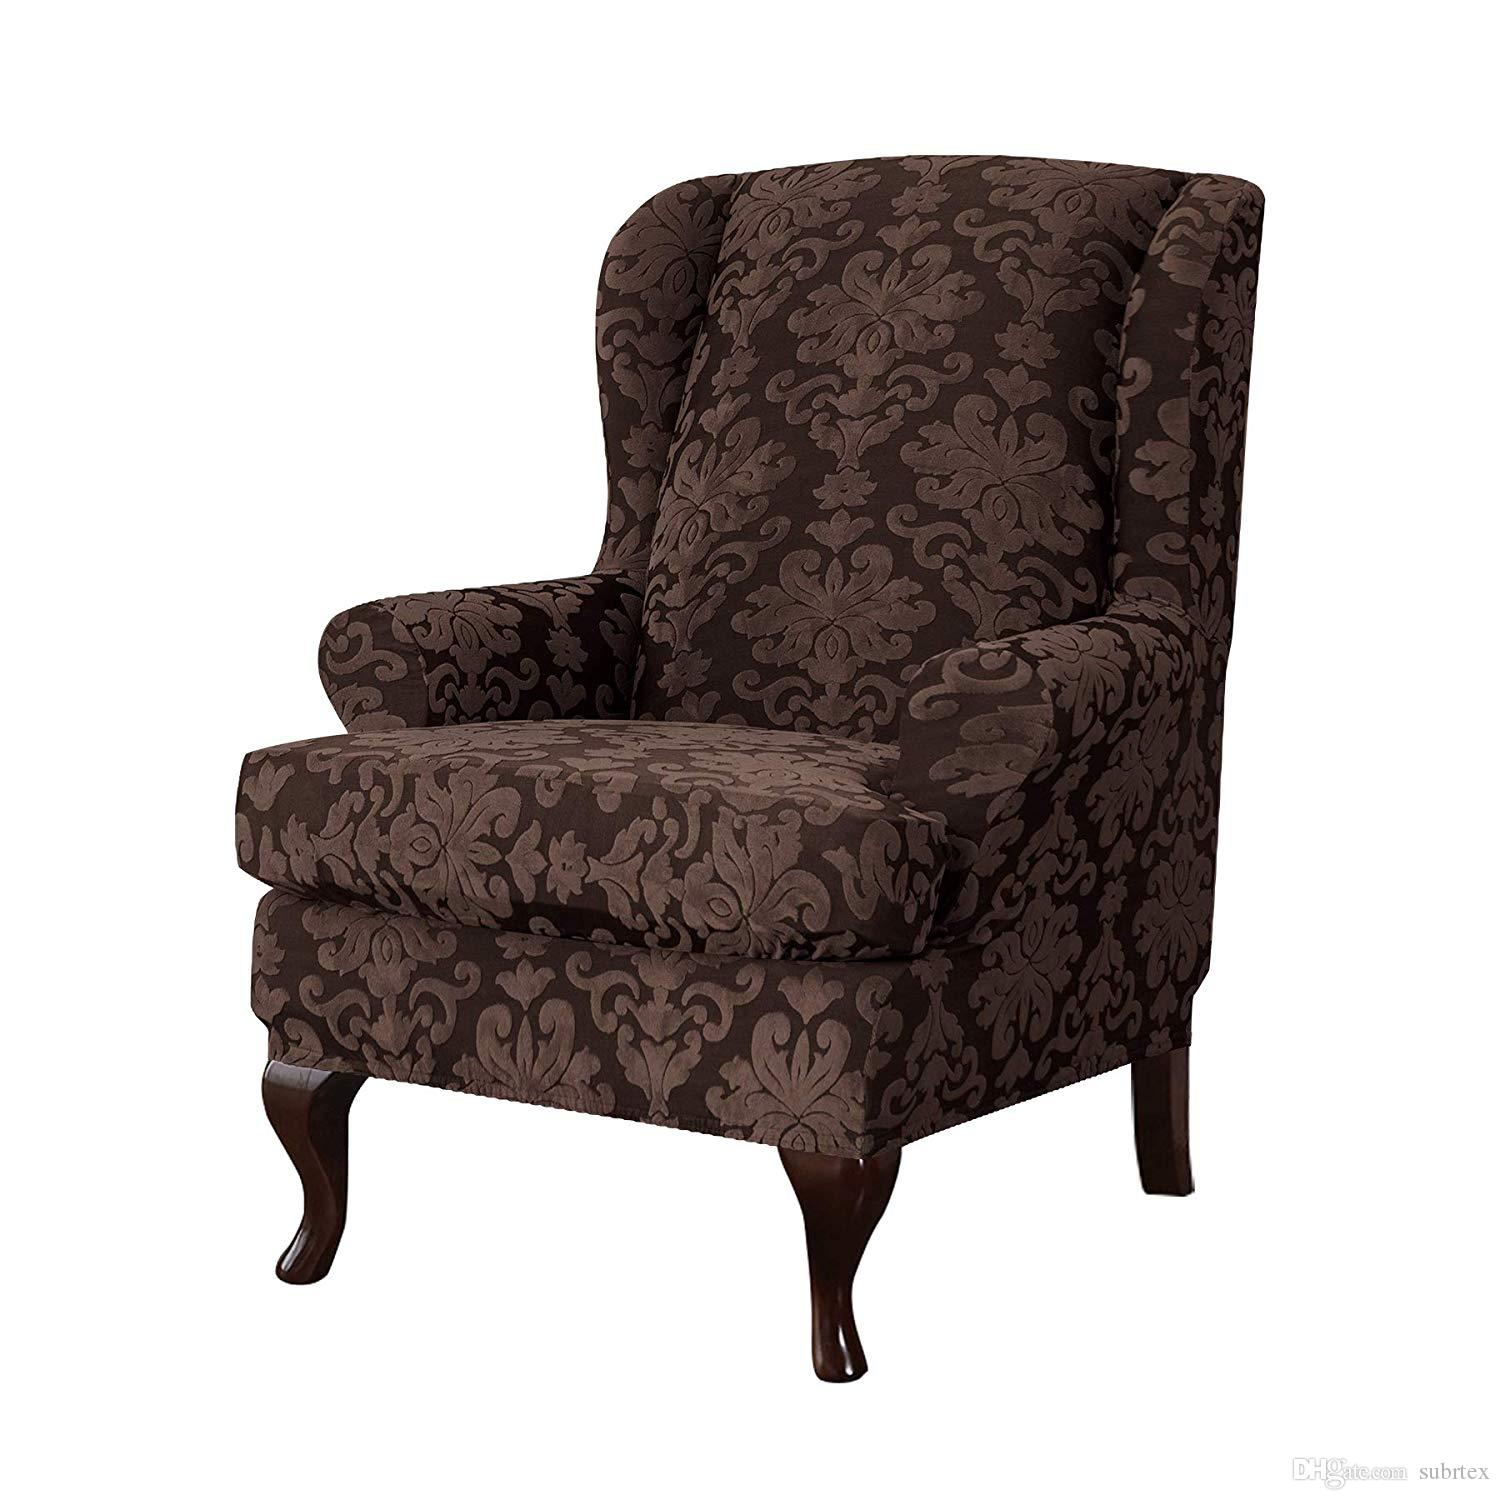 Surprising Subrtex Elegant Jacquard Wing Chair Slipcovers Wing Back Wingback Chair Cover Covers Wing Chair Chocolate Dining Room Chair Seat Cover Large Chair Pdpeps Interior Chair Design Pdpepsorg